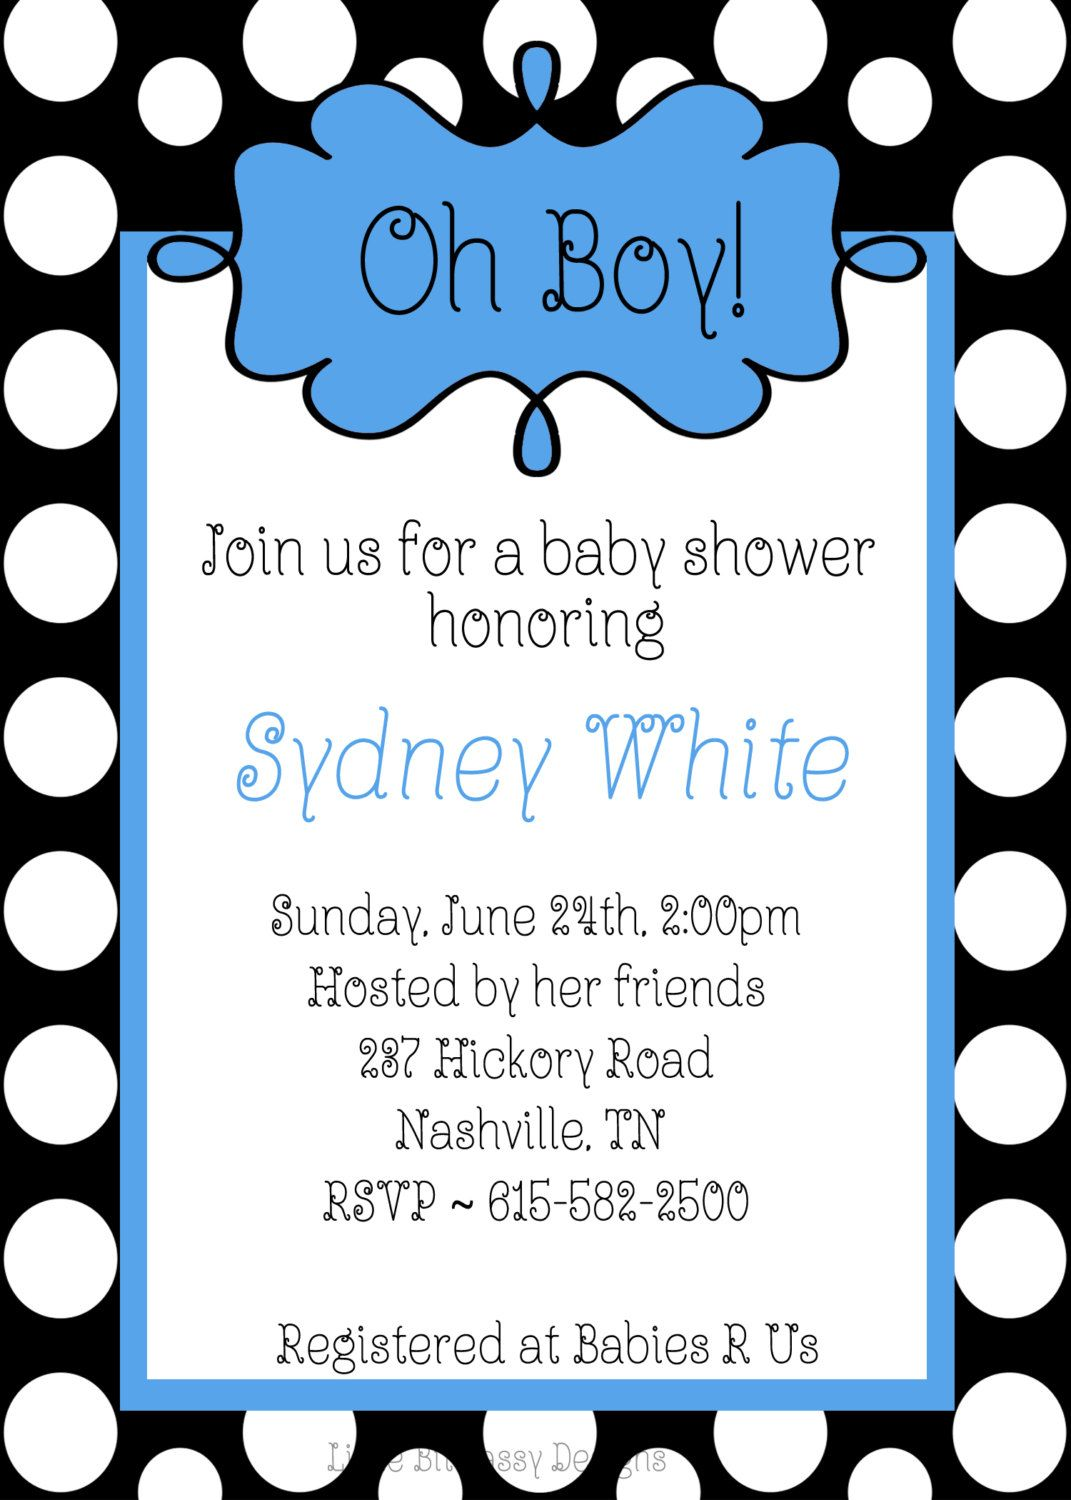 black white and blue baby shower | Oh Boy Baby Shower Black White ...